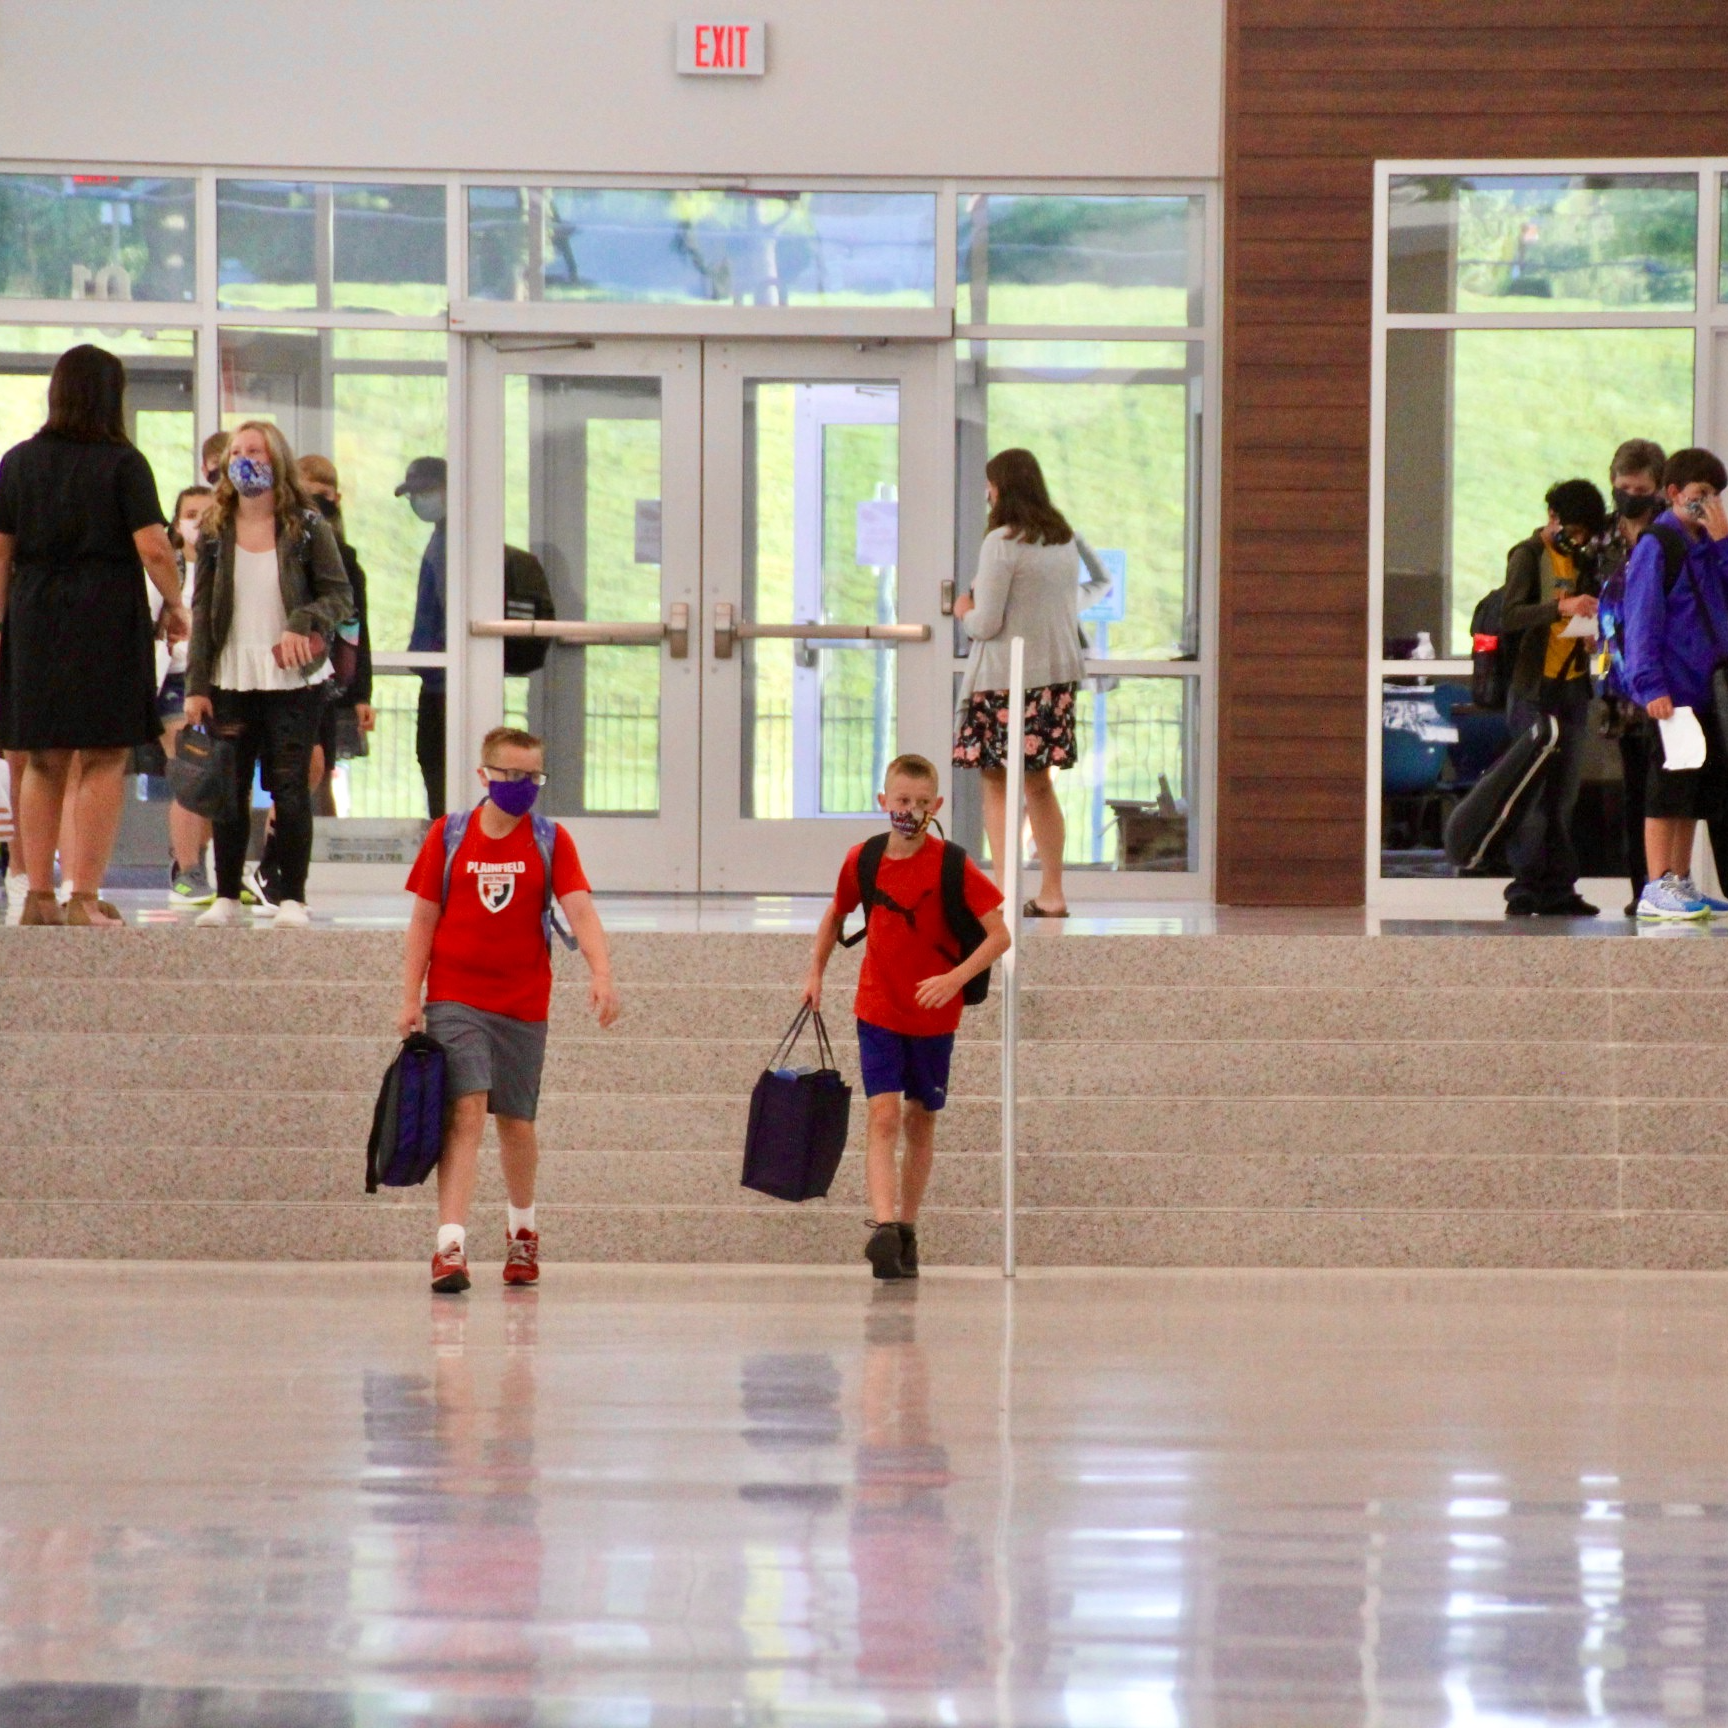 PCMS students were eager to get back to school, especially since they were returning to beautiful renovations.